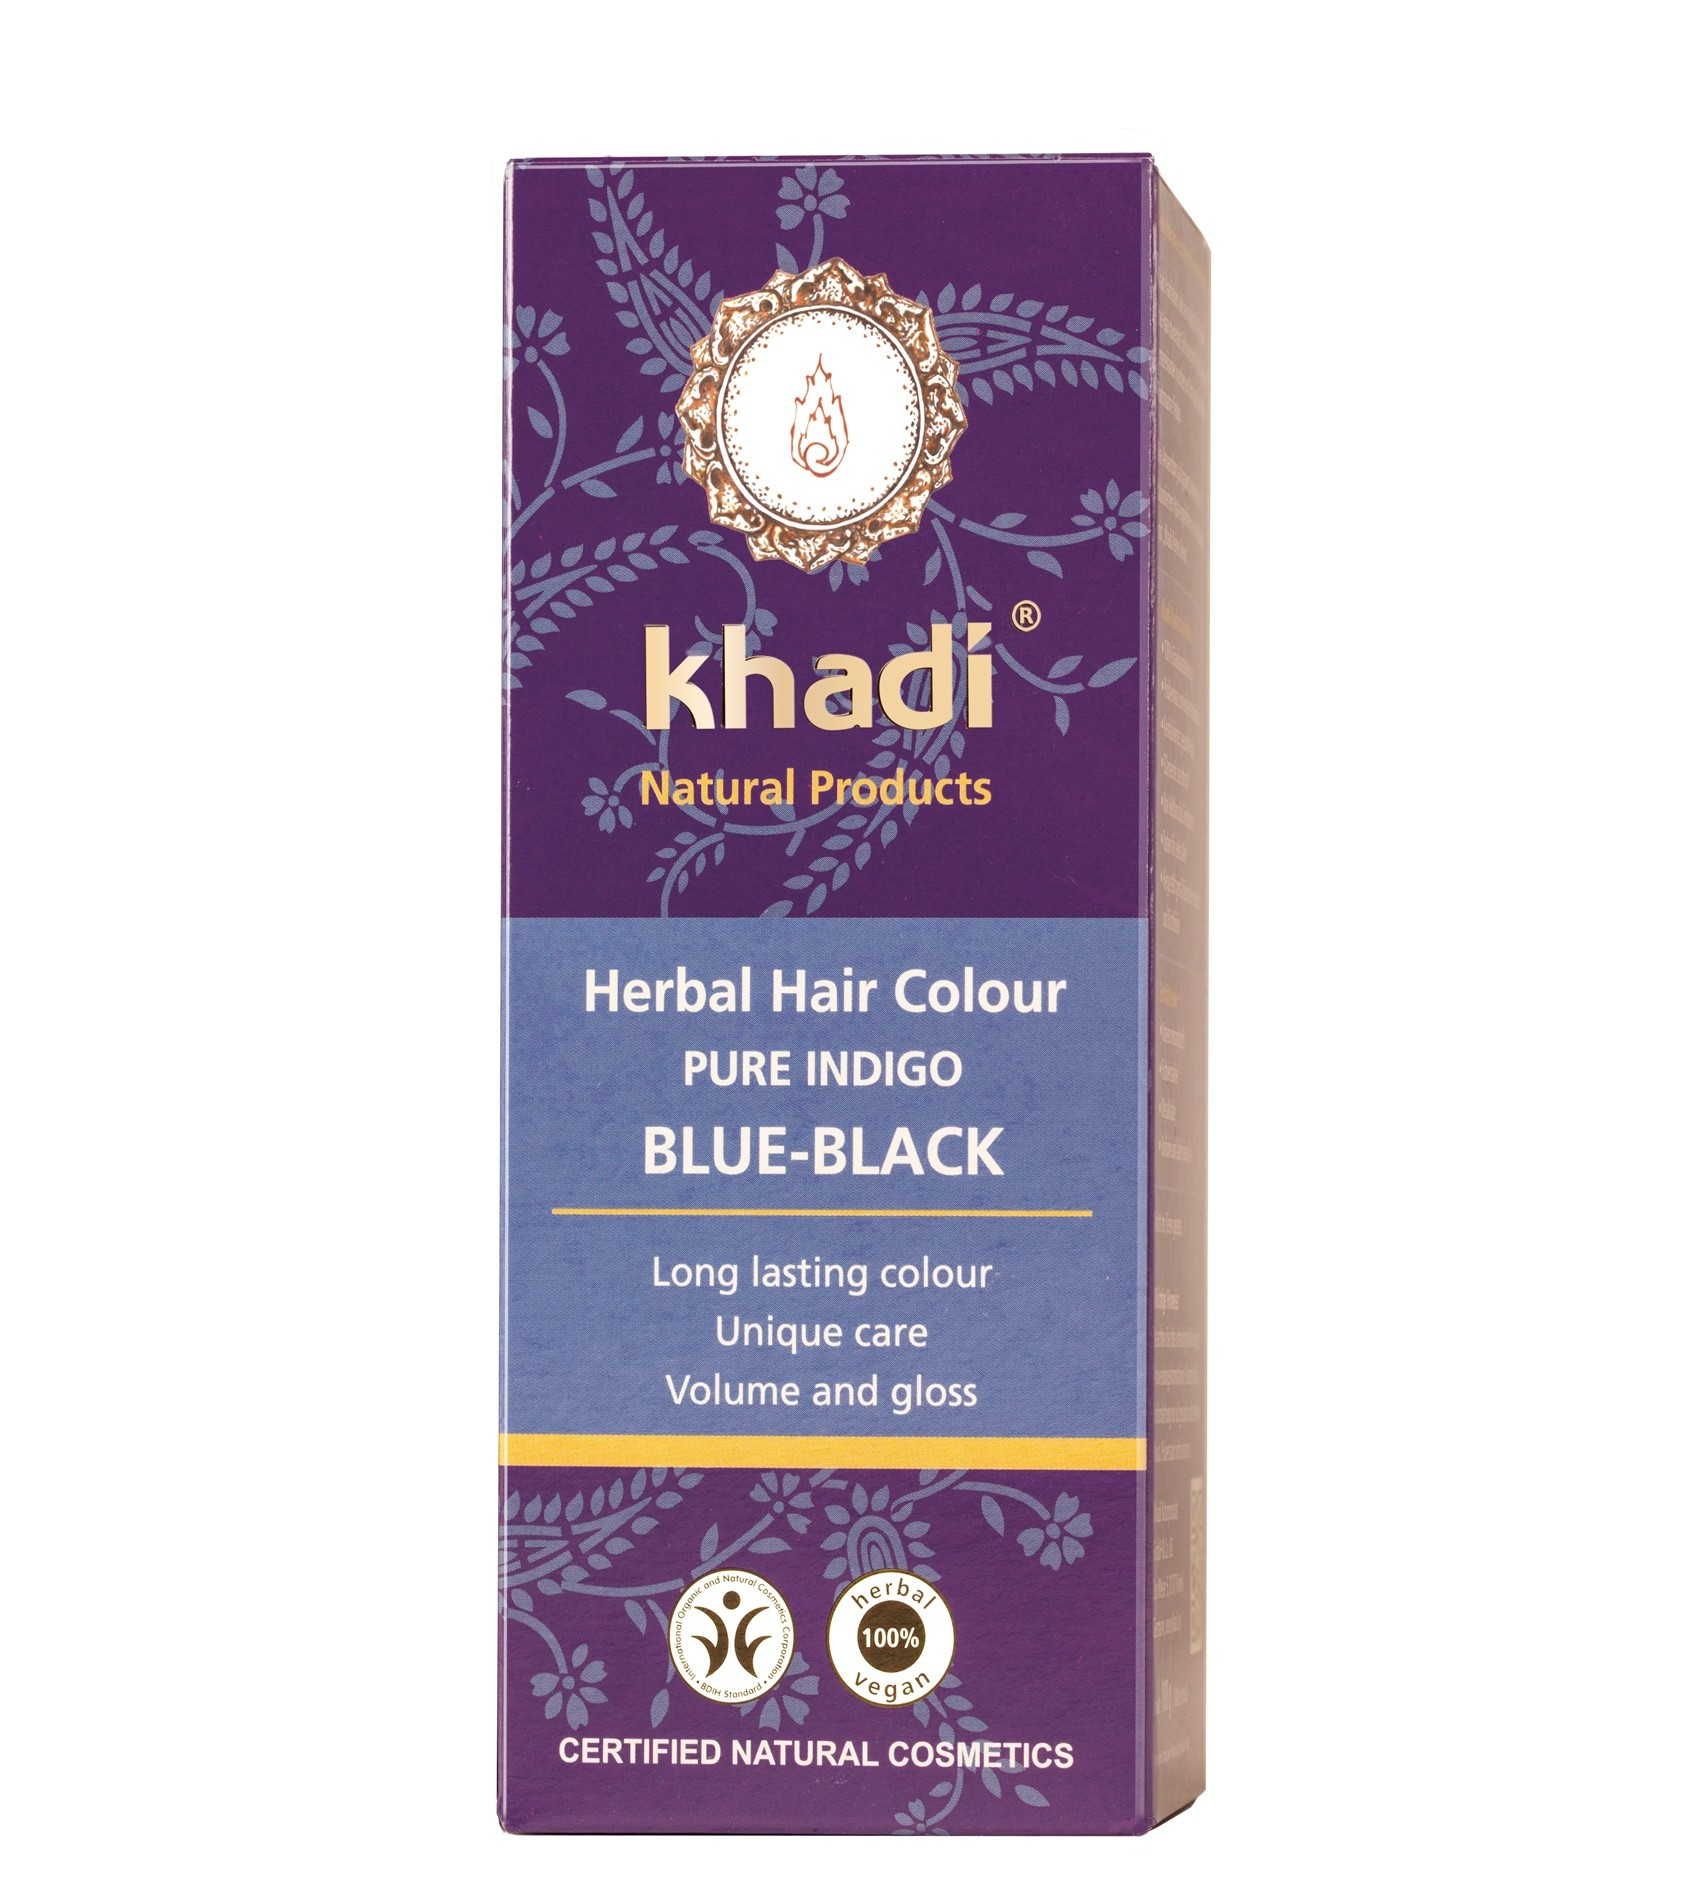 Khadi Herbal Hair Colour Pure Indigo Blue Black